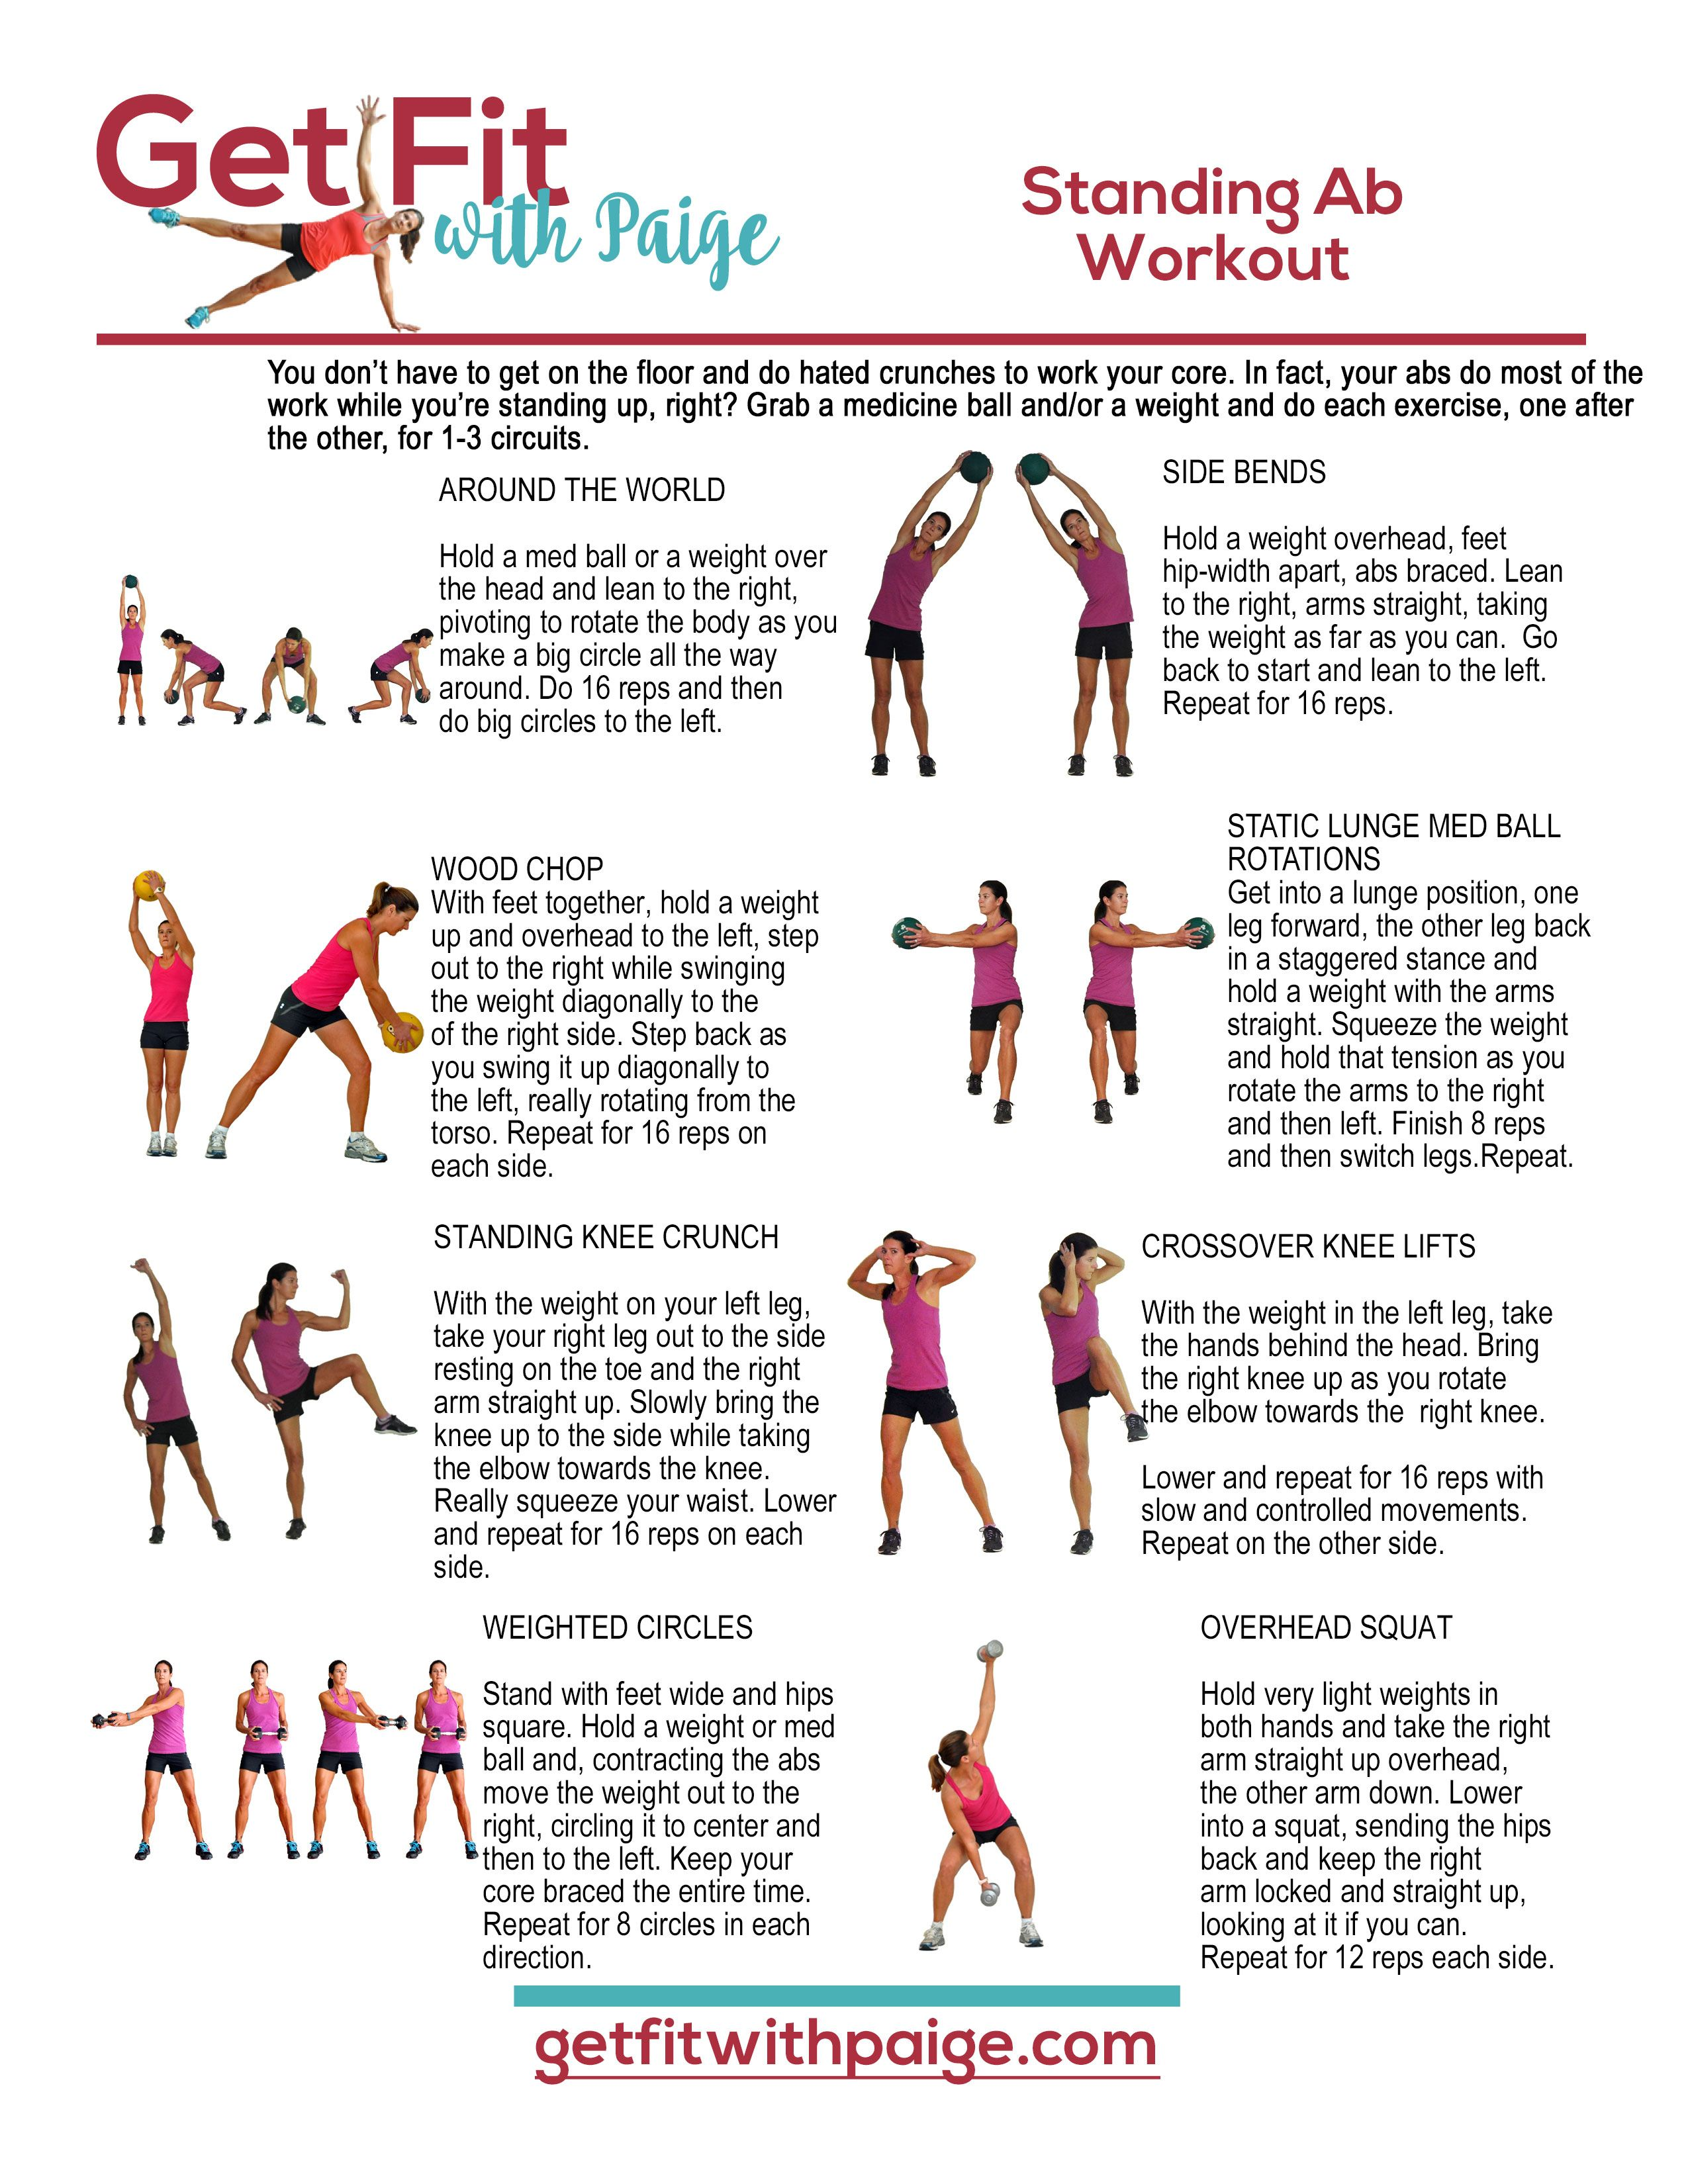 13+ Abdominal exercises standing up inspirations